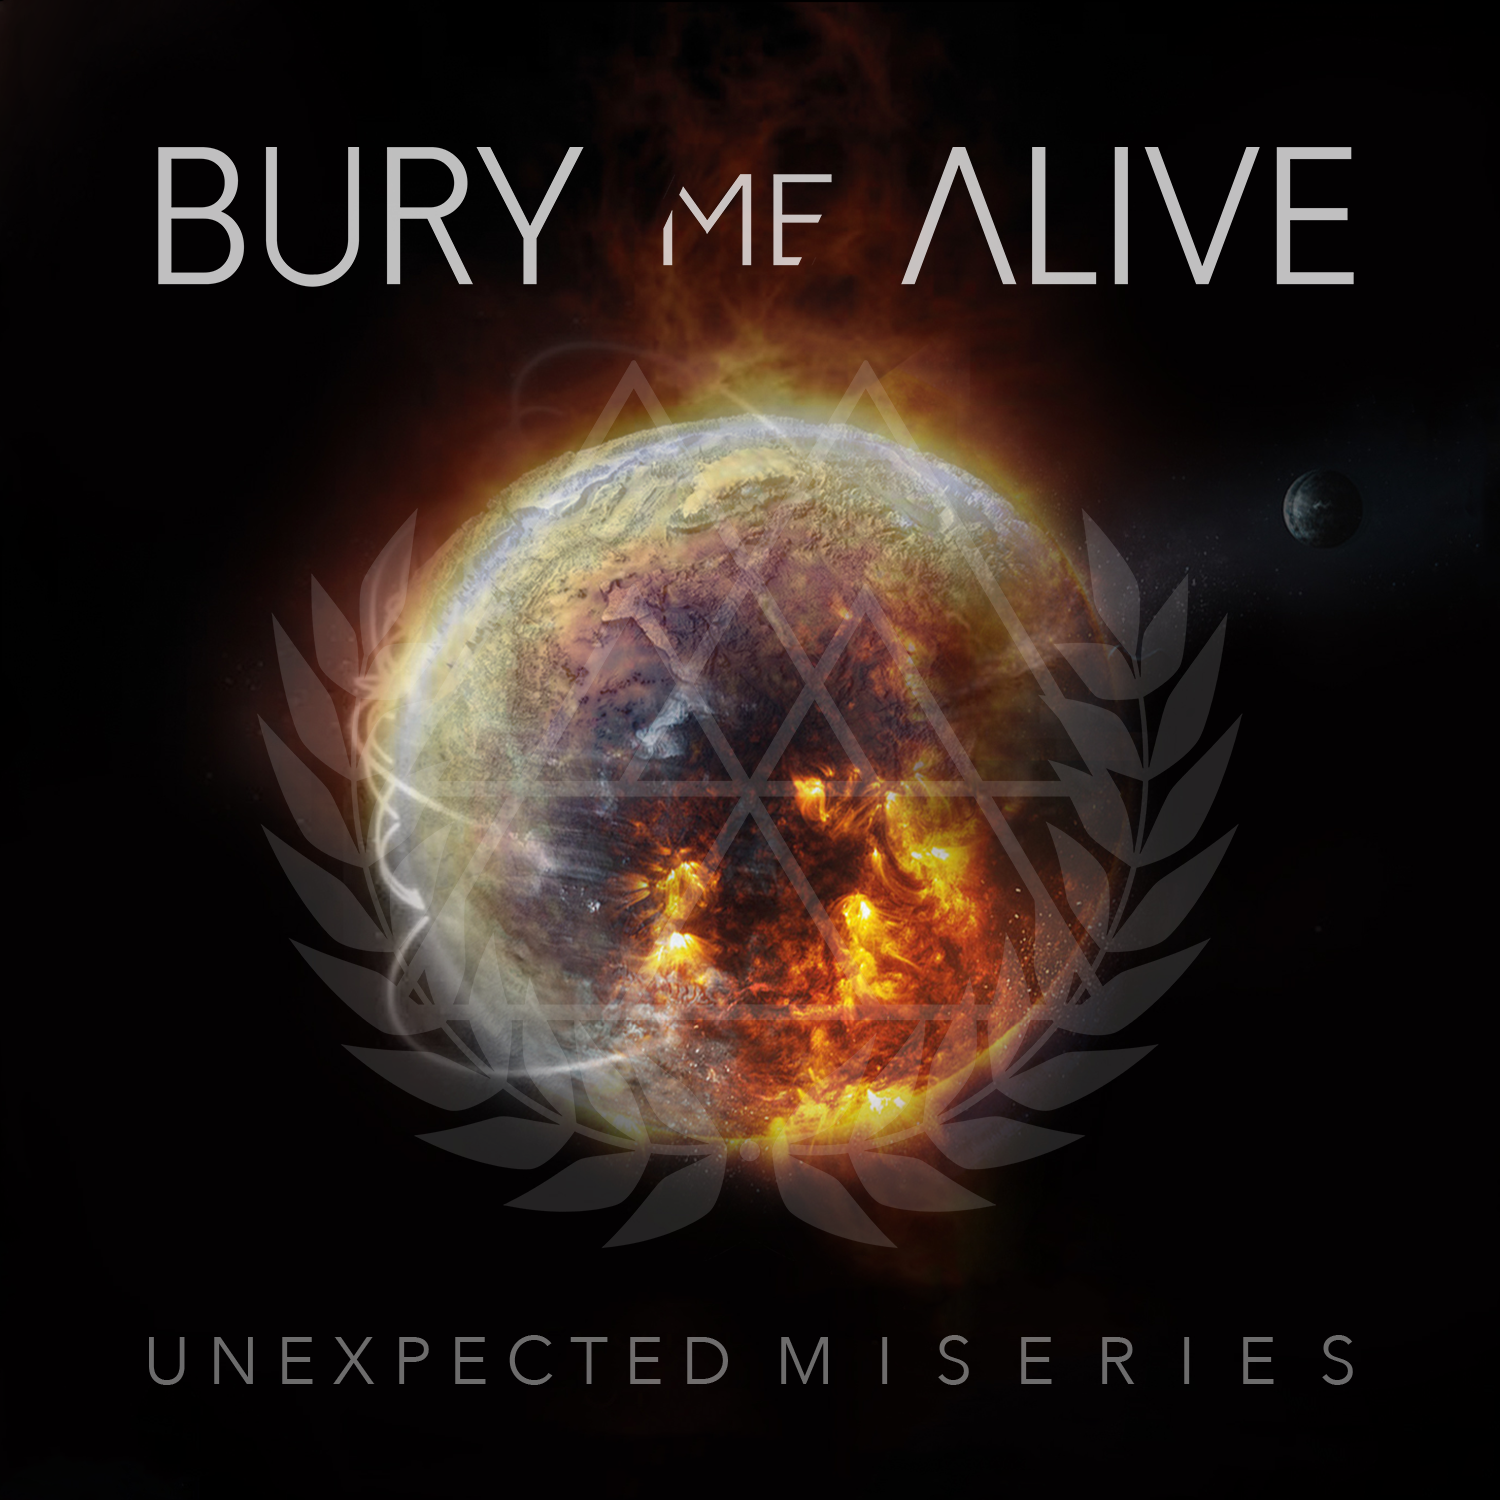 bury-me-alive-unexpected-miseries-metalcore-in-neuer-bluete-album-review